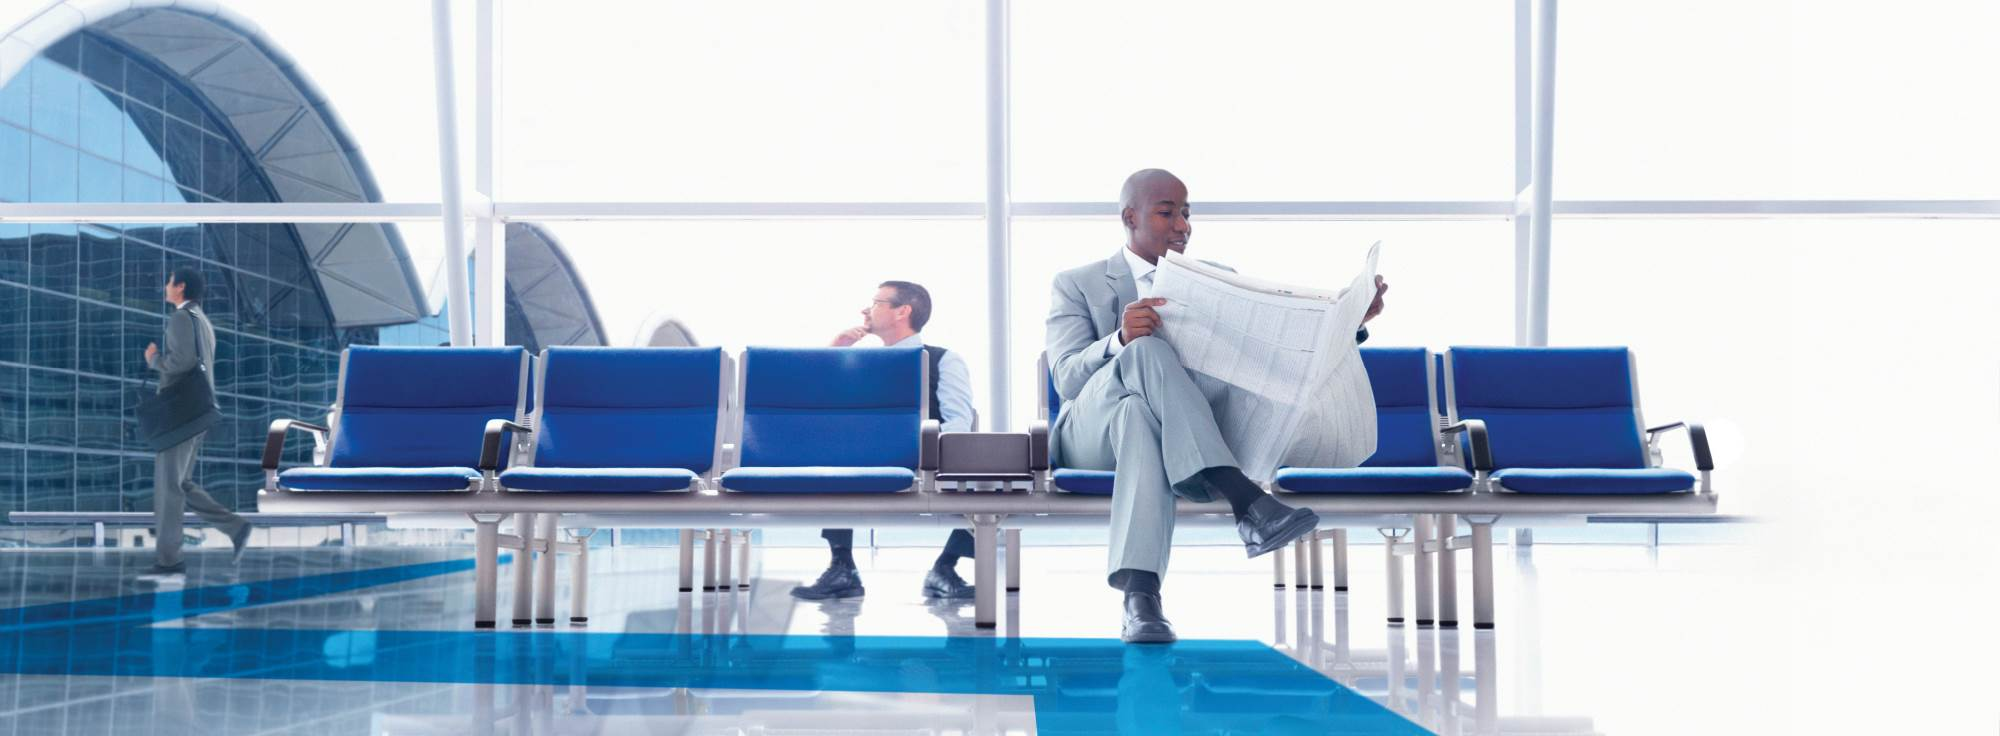 Supporting the business traveller